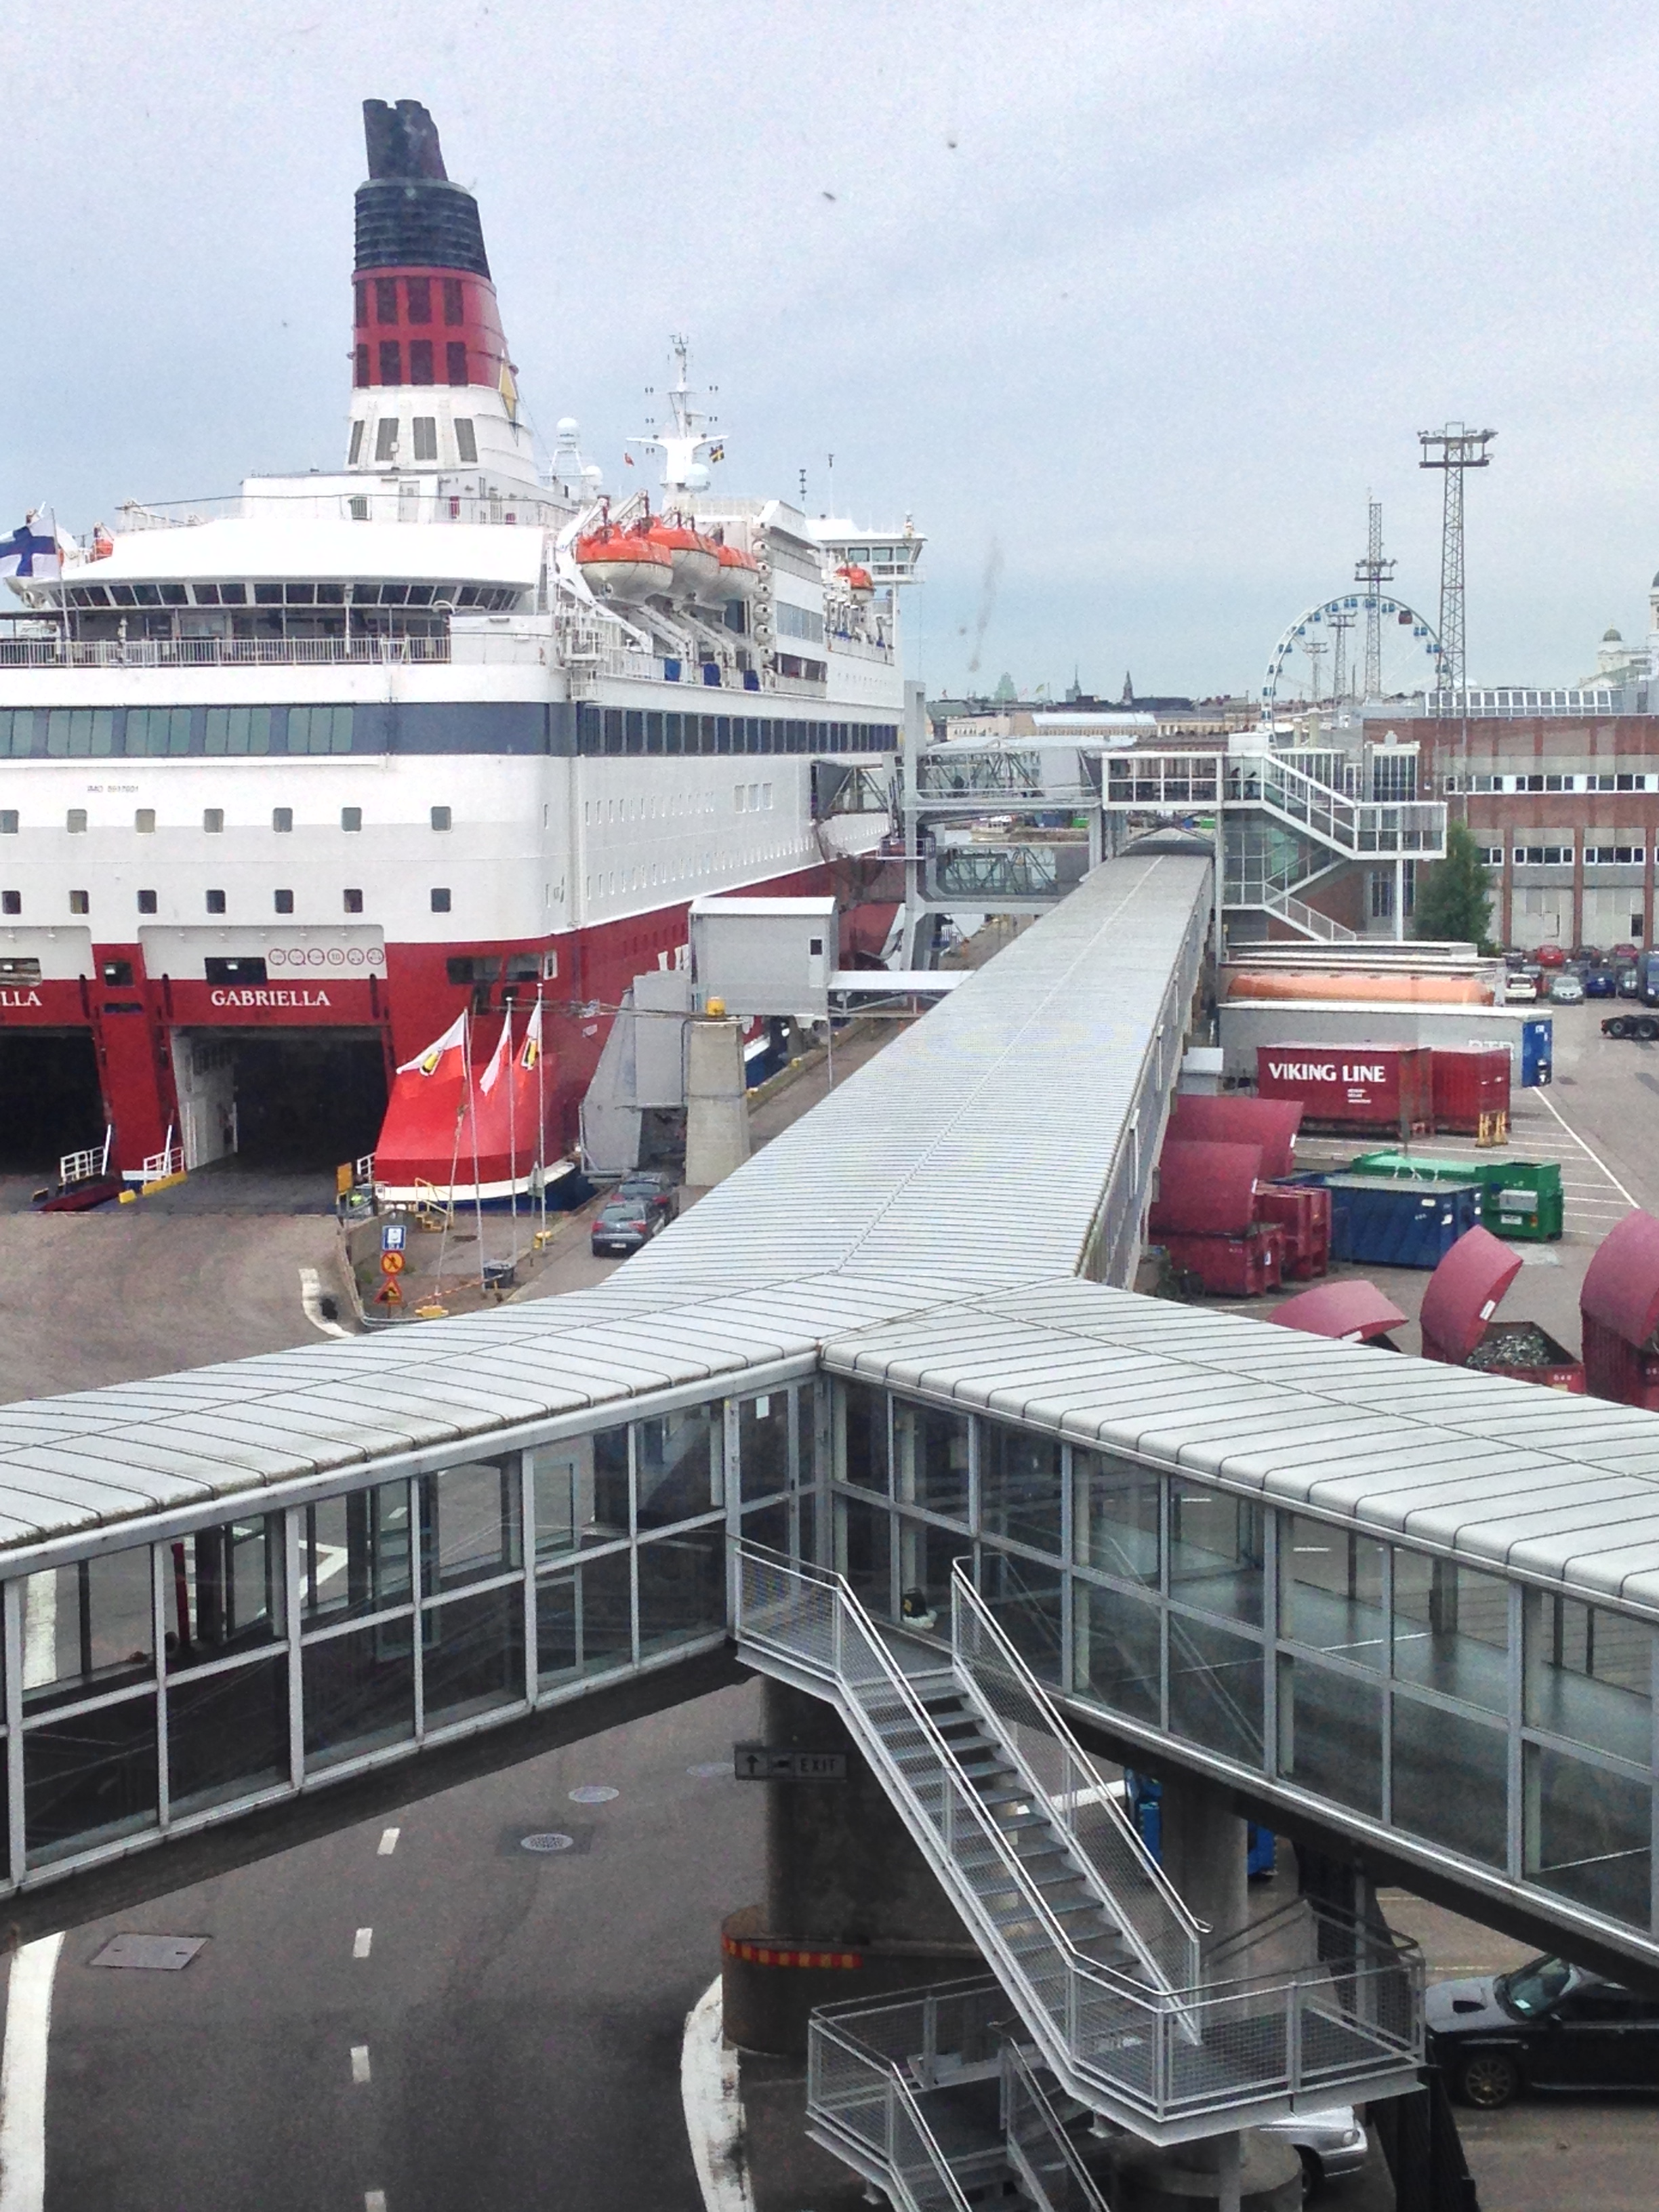 A docked Viking Line ferry at the Port of Helsinki.